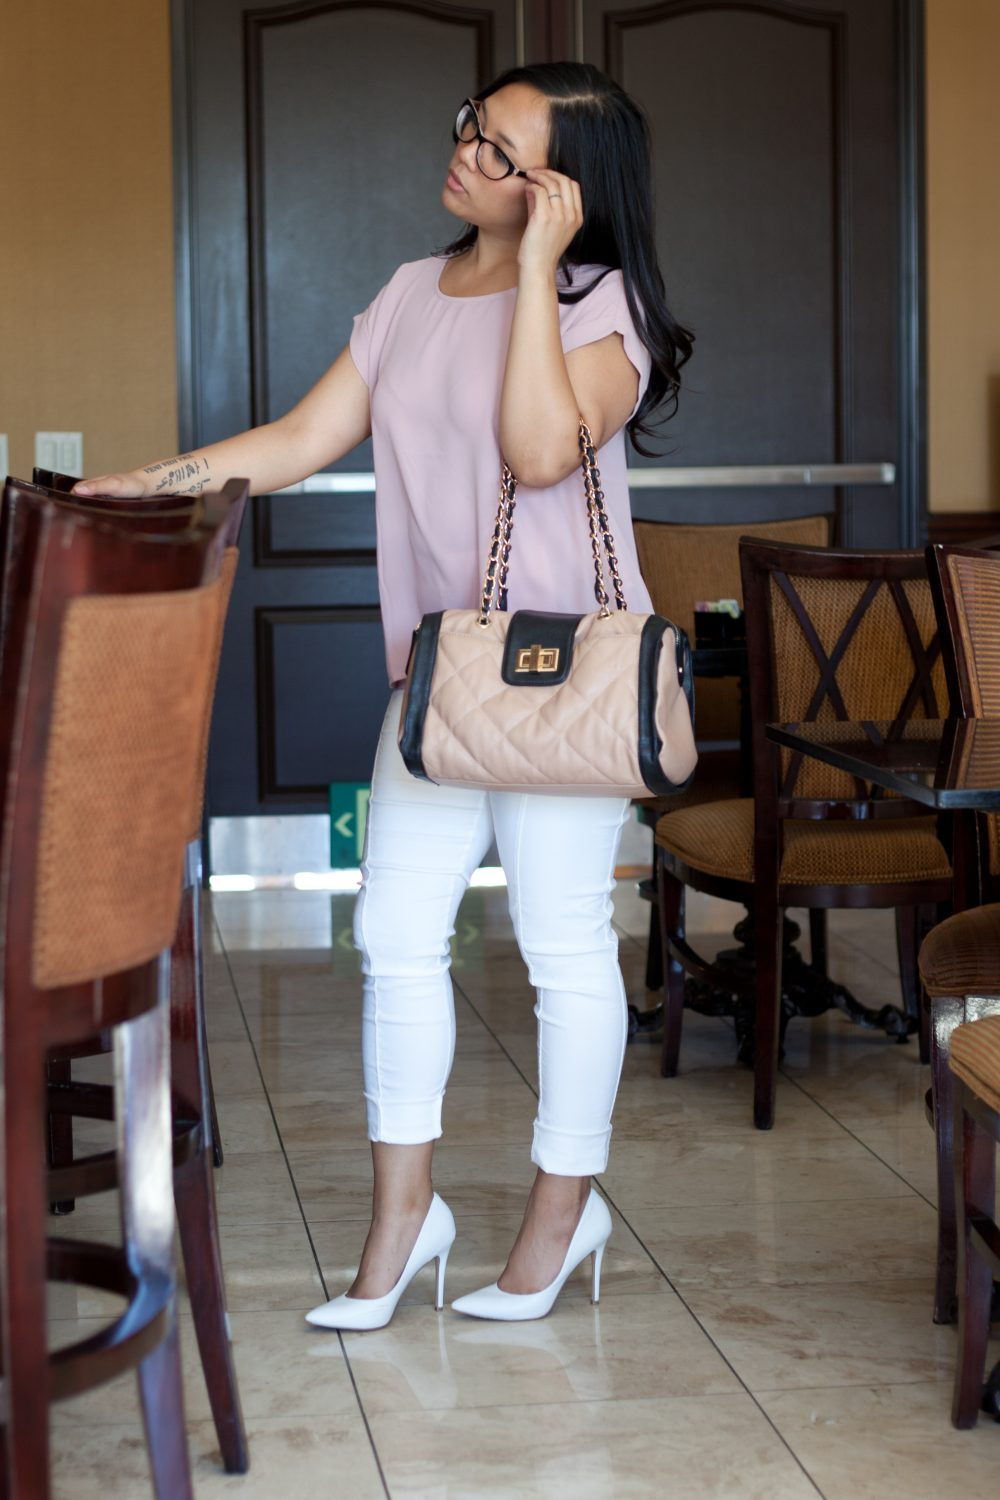 Shop the Look: Top: $12.90, Pants: $19.99, Heels: $56.69 - www.theballeronabudget.com